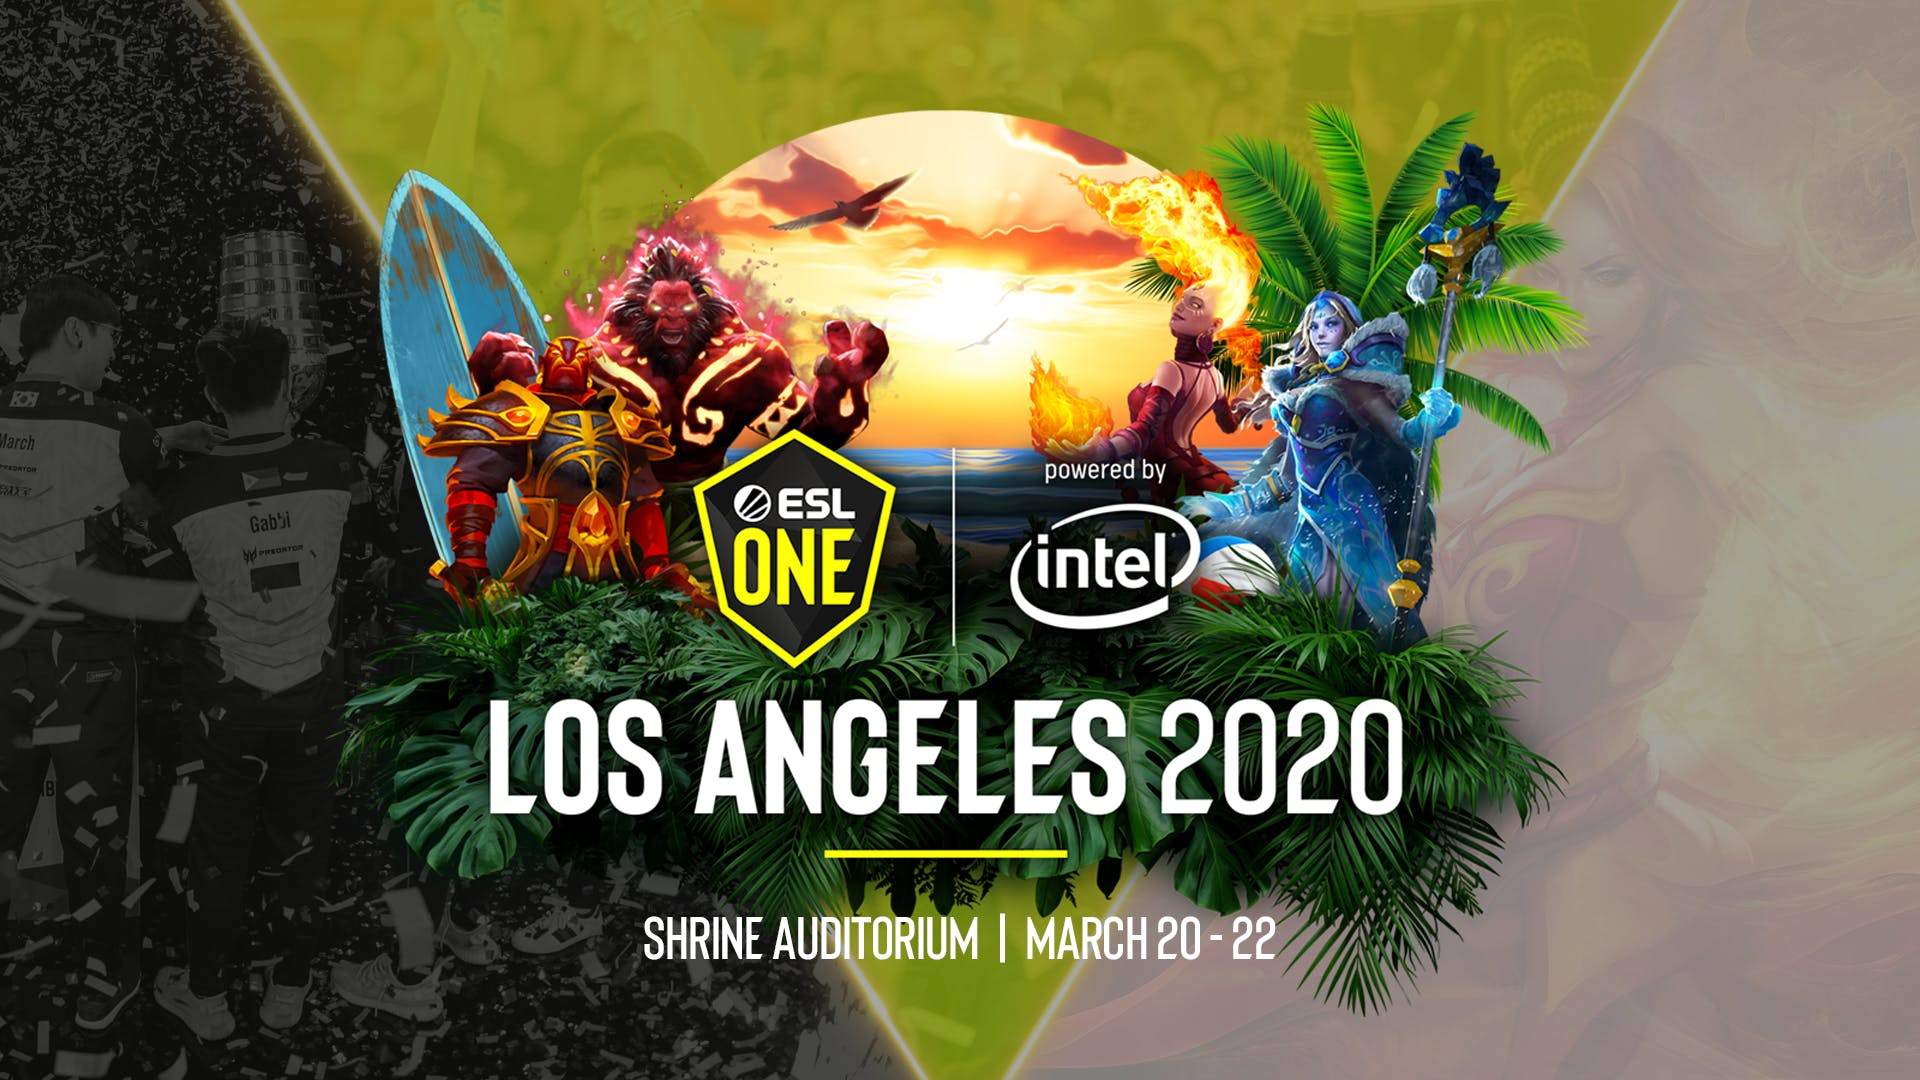 ESL One Los Angeles 2020 (COVID-19 cancelled) Tournament